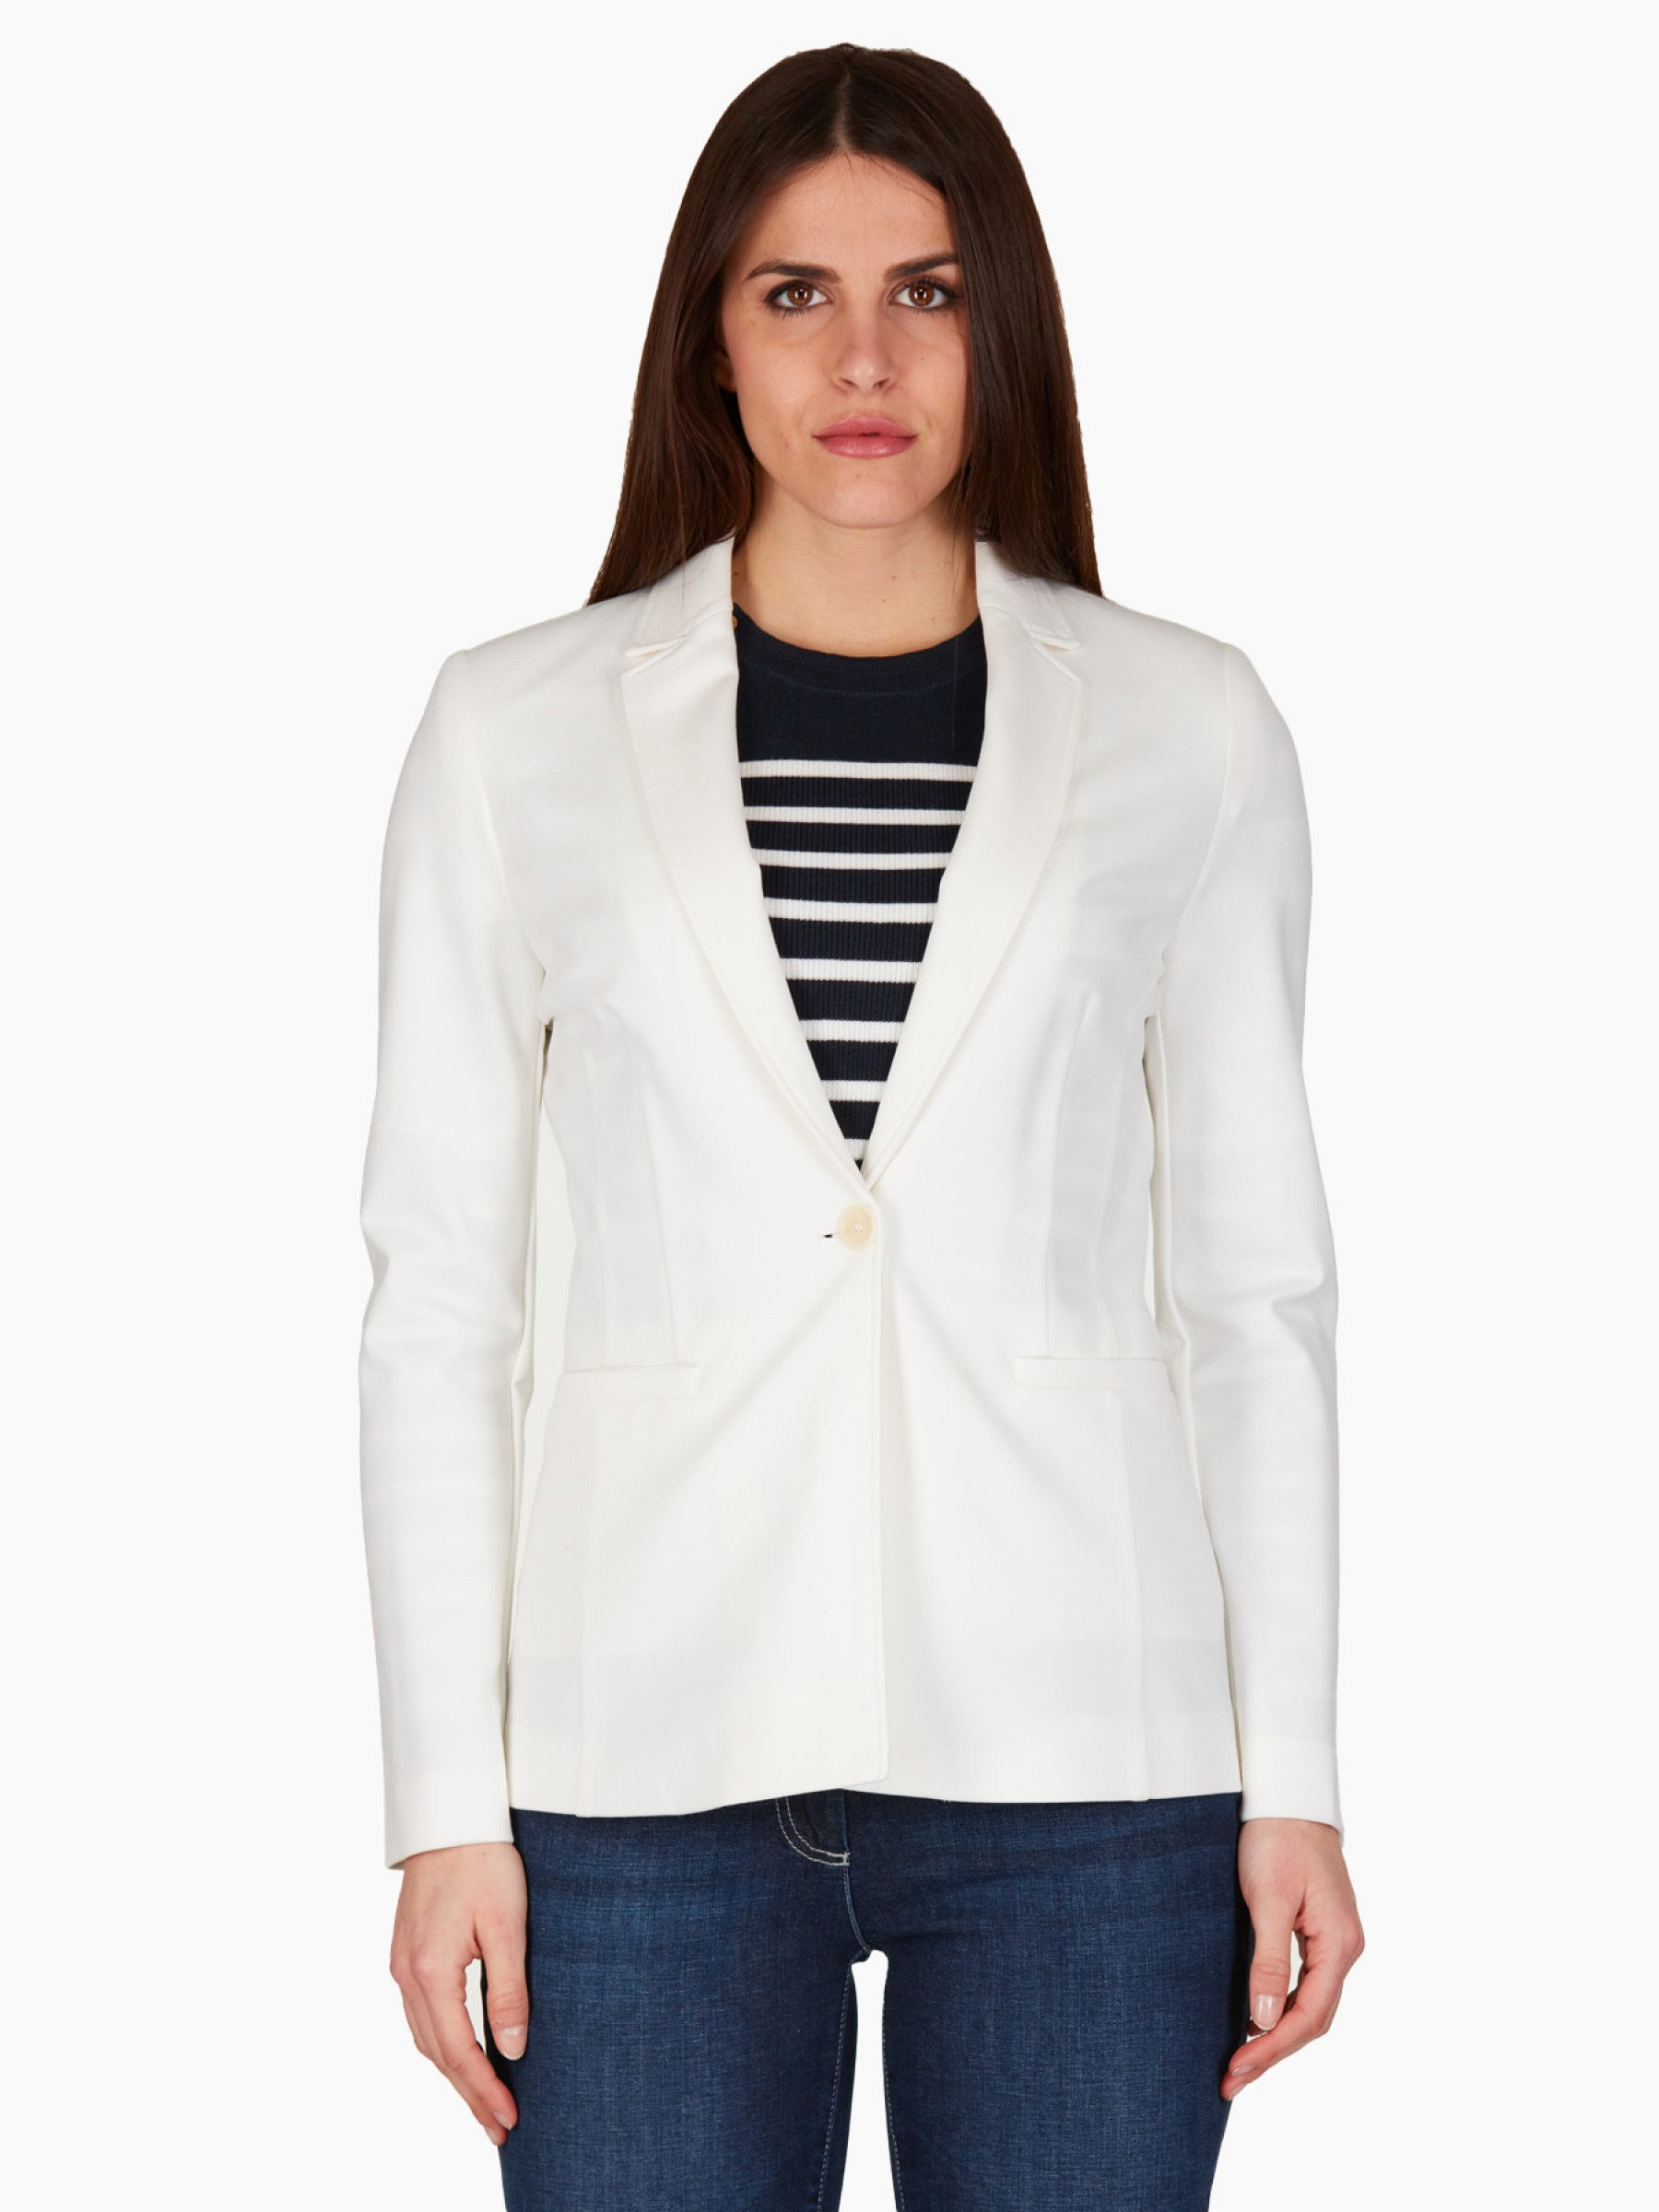 Pennyblack Giacca in jersey PE2021 OPPURE-004-WHITE